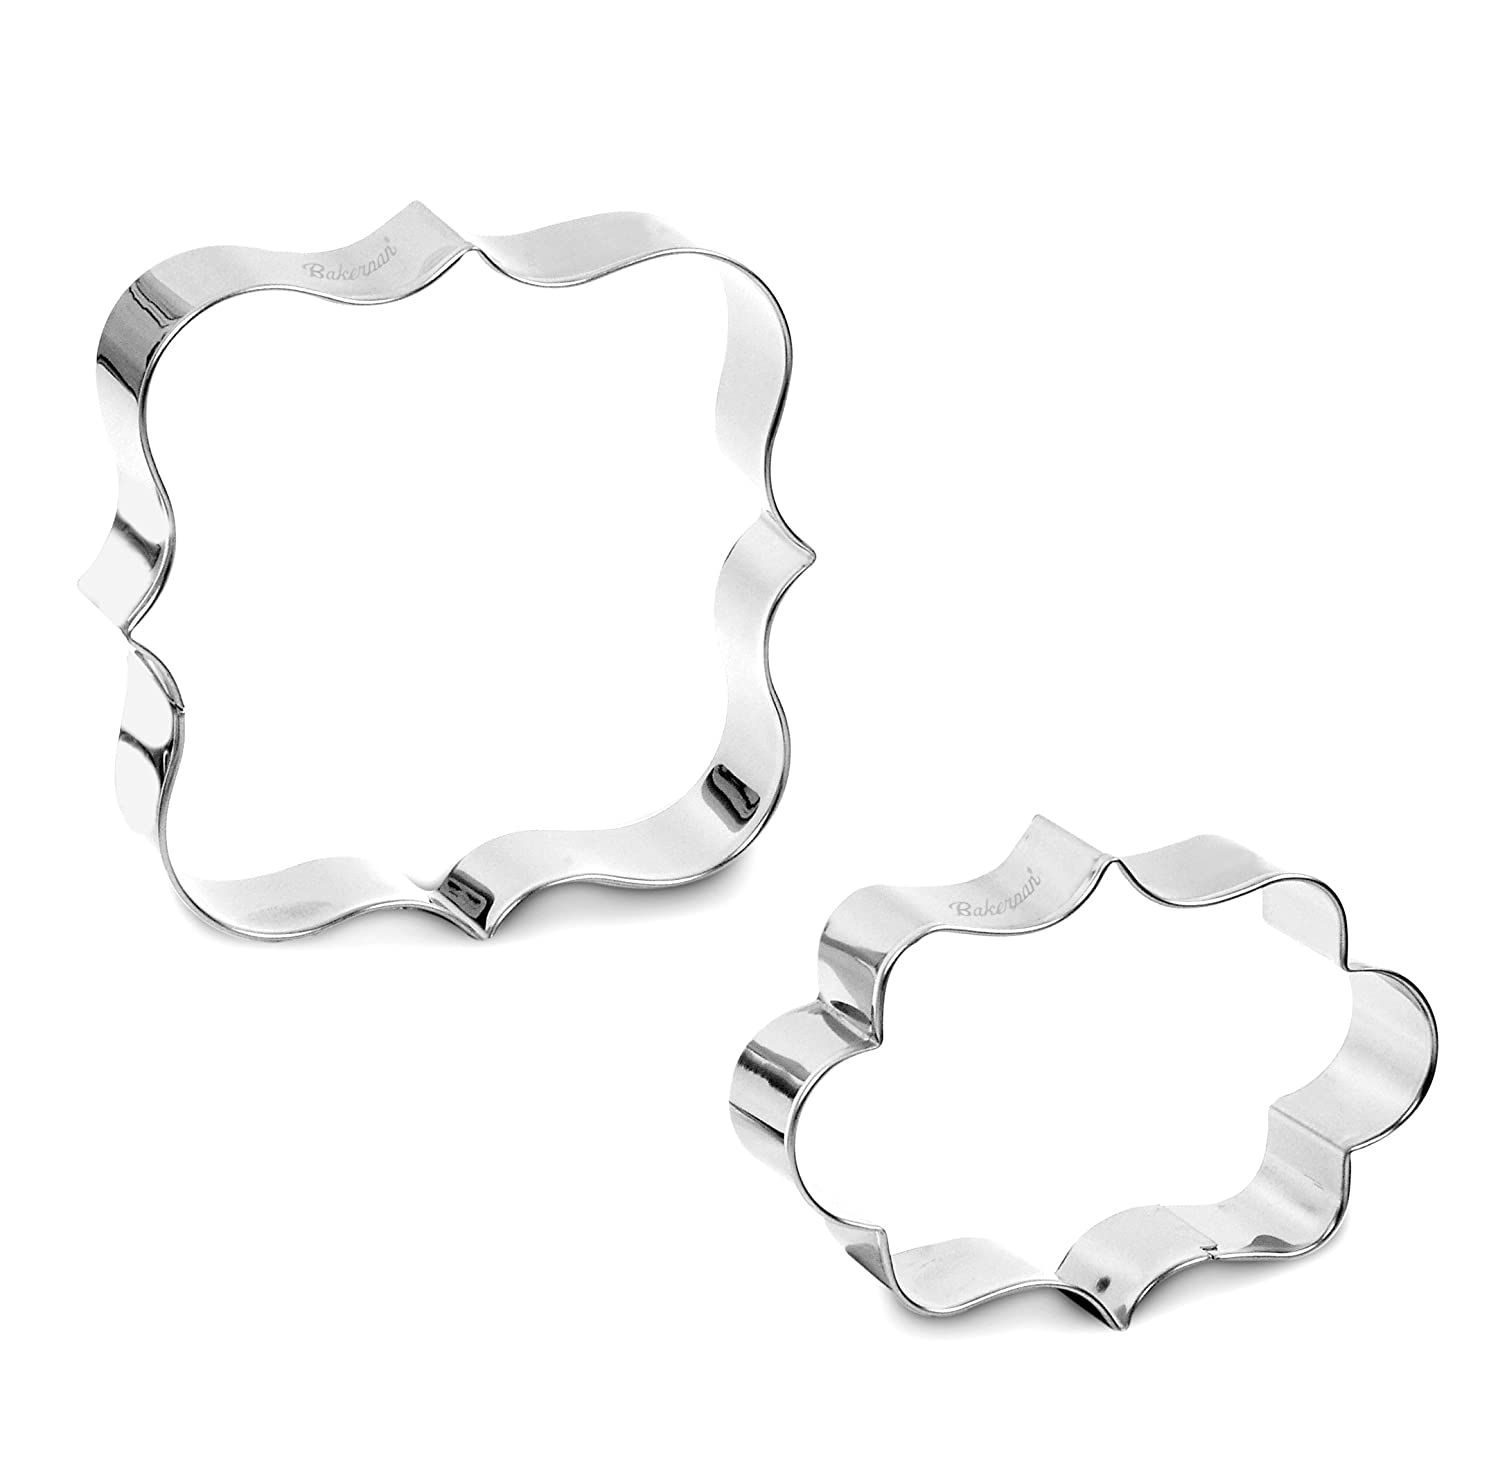 Bakerpan Stainless Steel Cookie Cutter Plaques II Set of 2